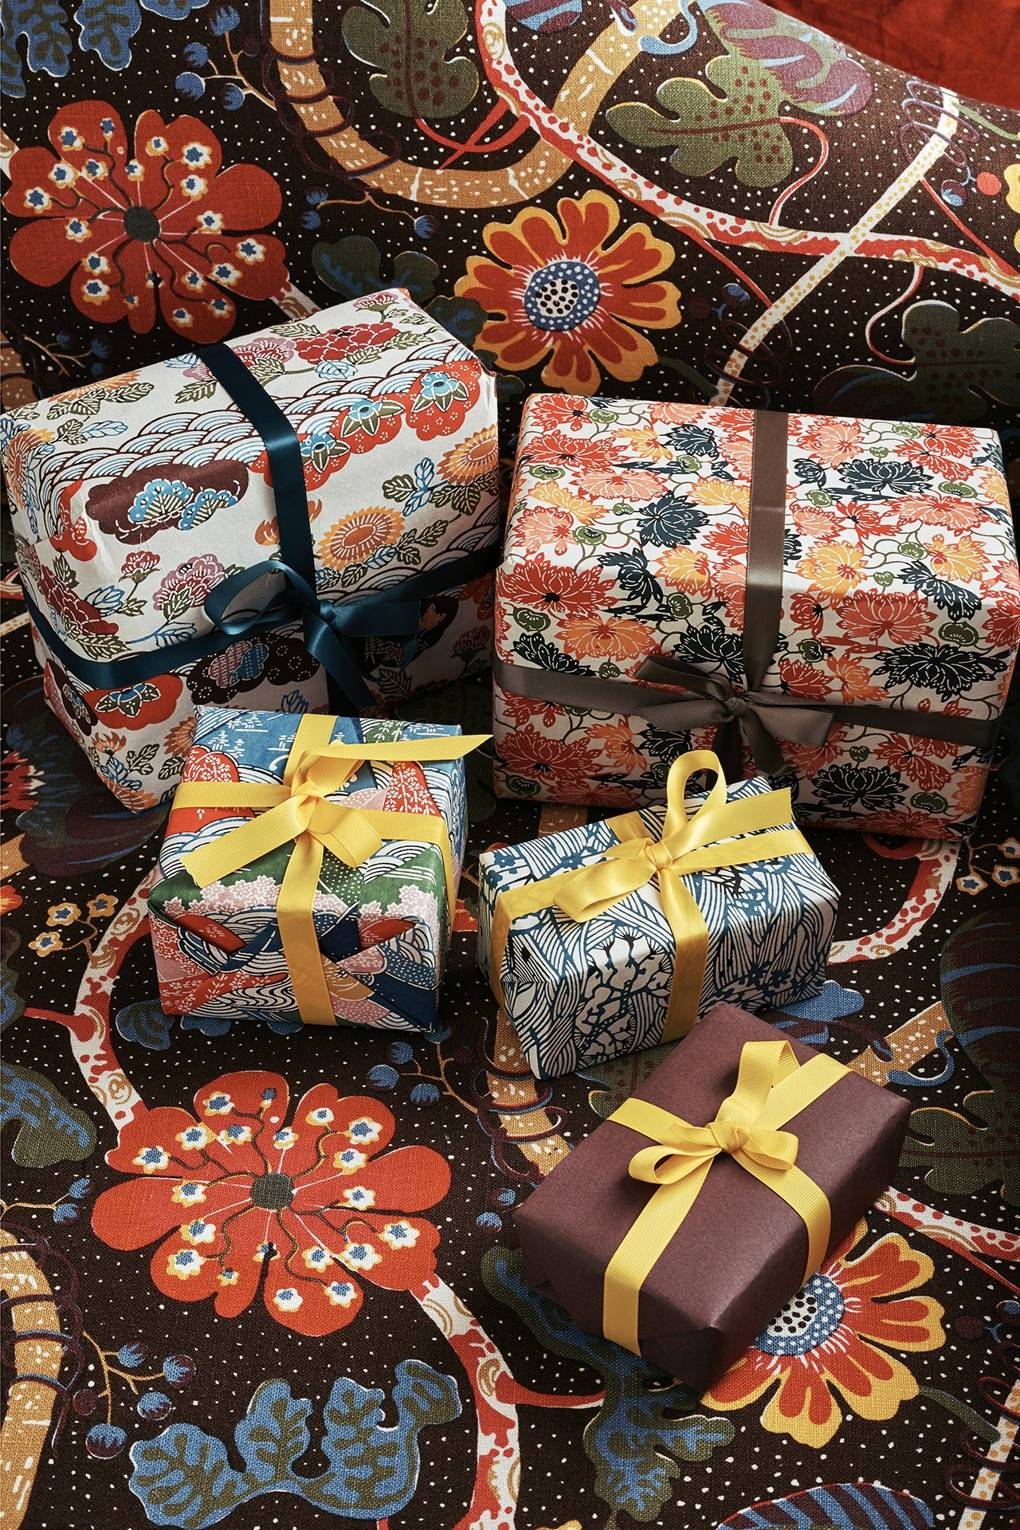 How to wrap a present properly, according to the head of home at Harrods